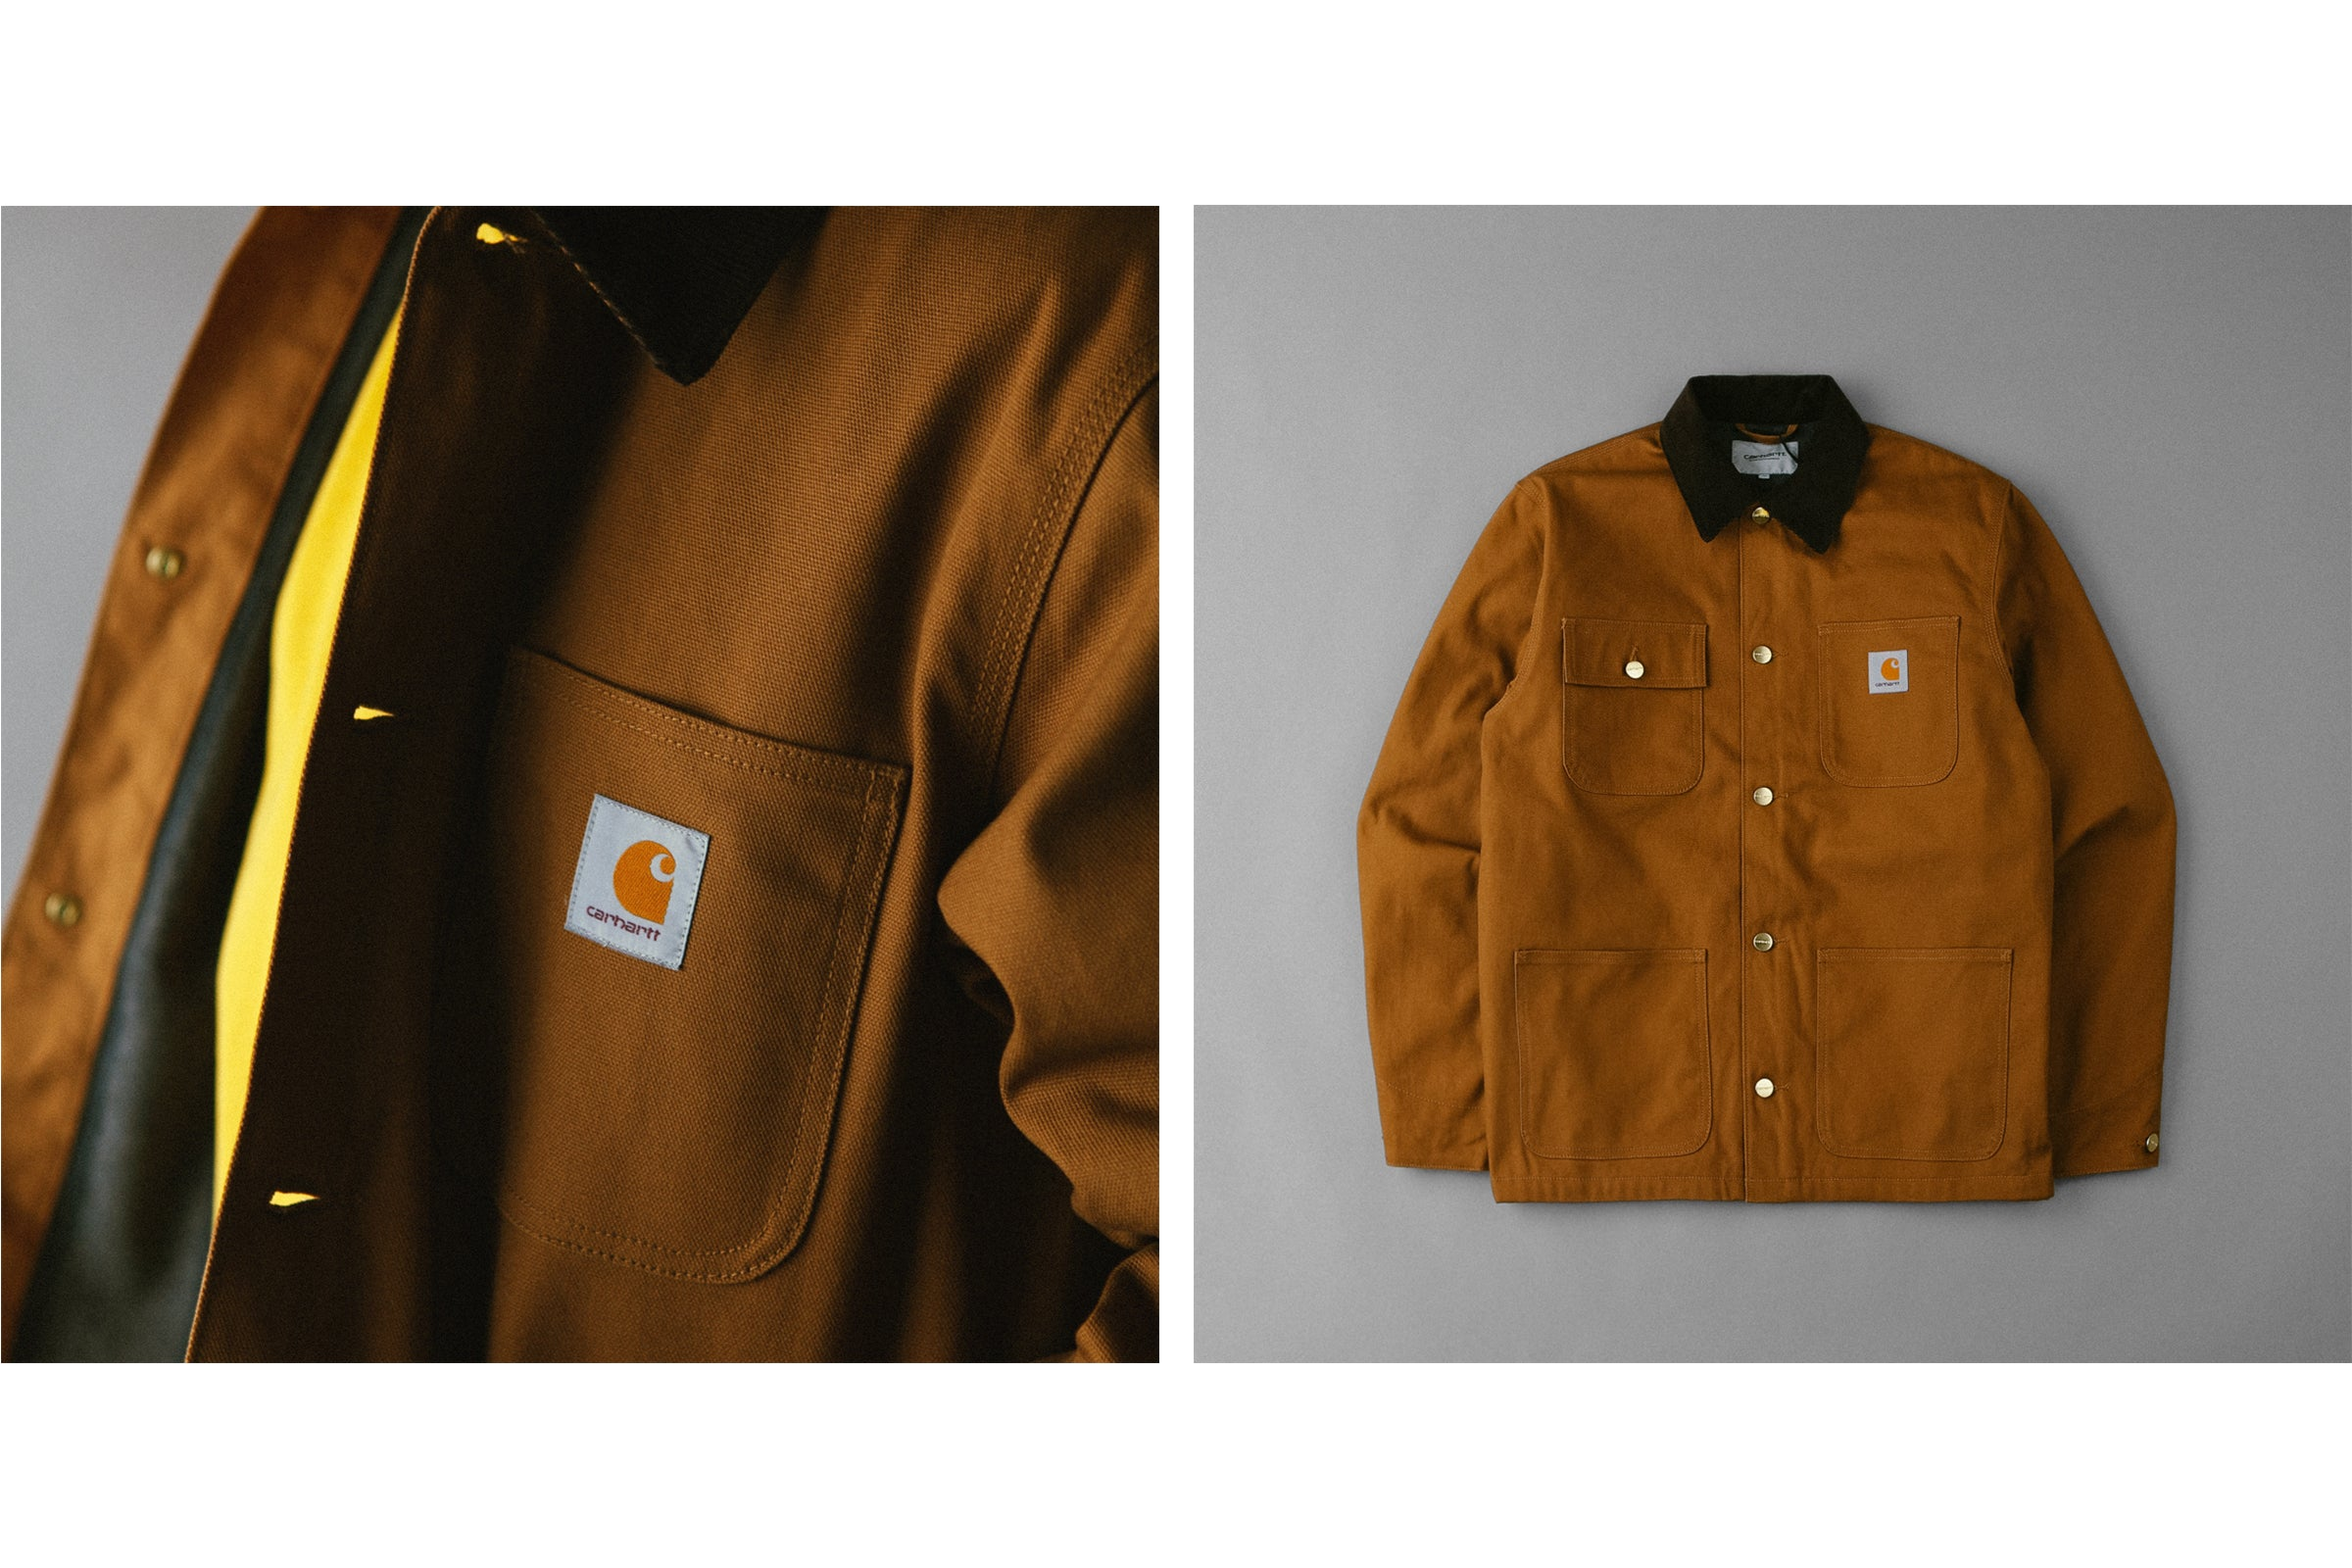 Carhartt: Core Pieces & FW9 Season Updates - Flatspot